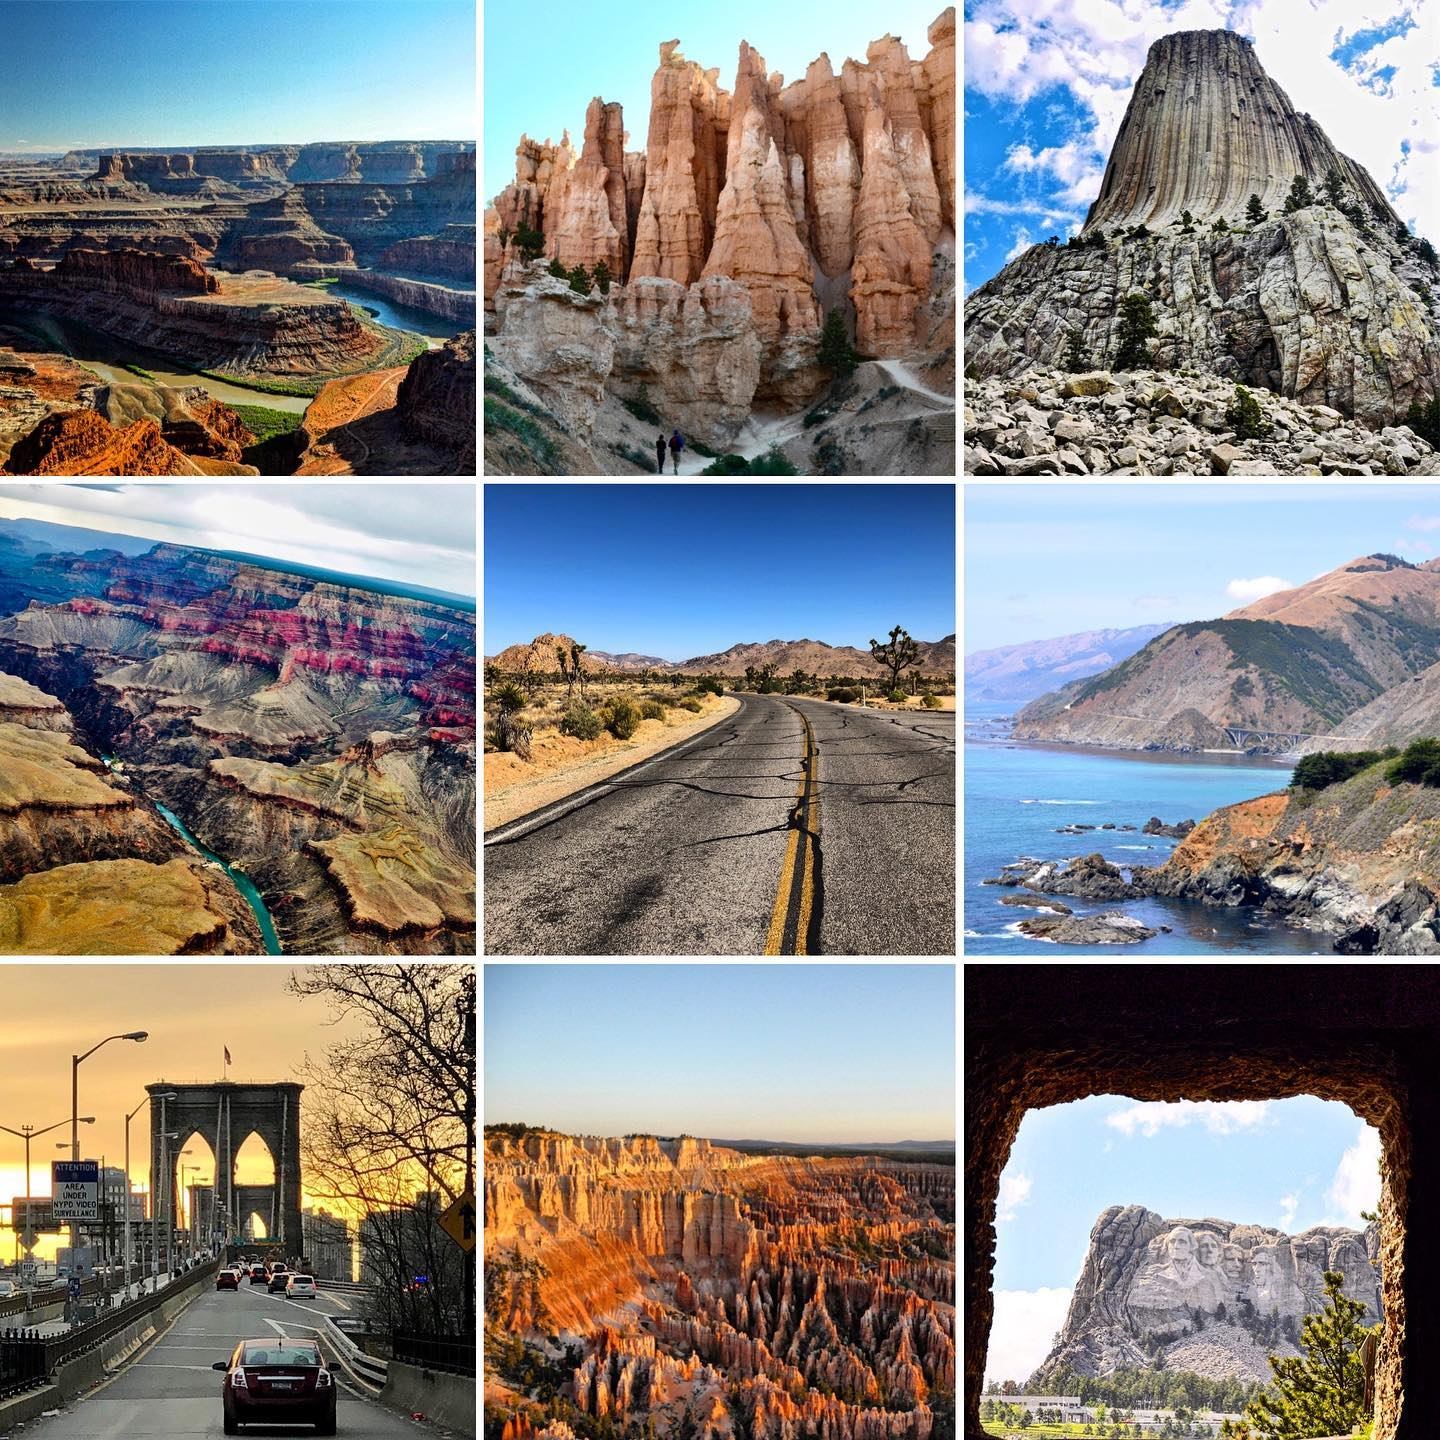 Top 9 of 2020 Your favorite pics of 2020 from our feed. Many thanks! Happy new year y'all! May you have a smashing 2021 filled with lots of delightful trips.  #2020 #happynewyear #thingswillgetbetter #travel #traveltheusa #travelgram #lookingforward #2021 #traveladdict #usaaddicted #usaliebe #usalove #reiseliebe #reisenmachtglücklich #reiselust #reisen #travel #usa #usareisen #picsoftheyear #wanderlust #reiseliebe #reisefotografie #traveltheworld #traveler #usatour #usanature #instatraveling #instatravel